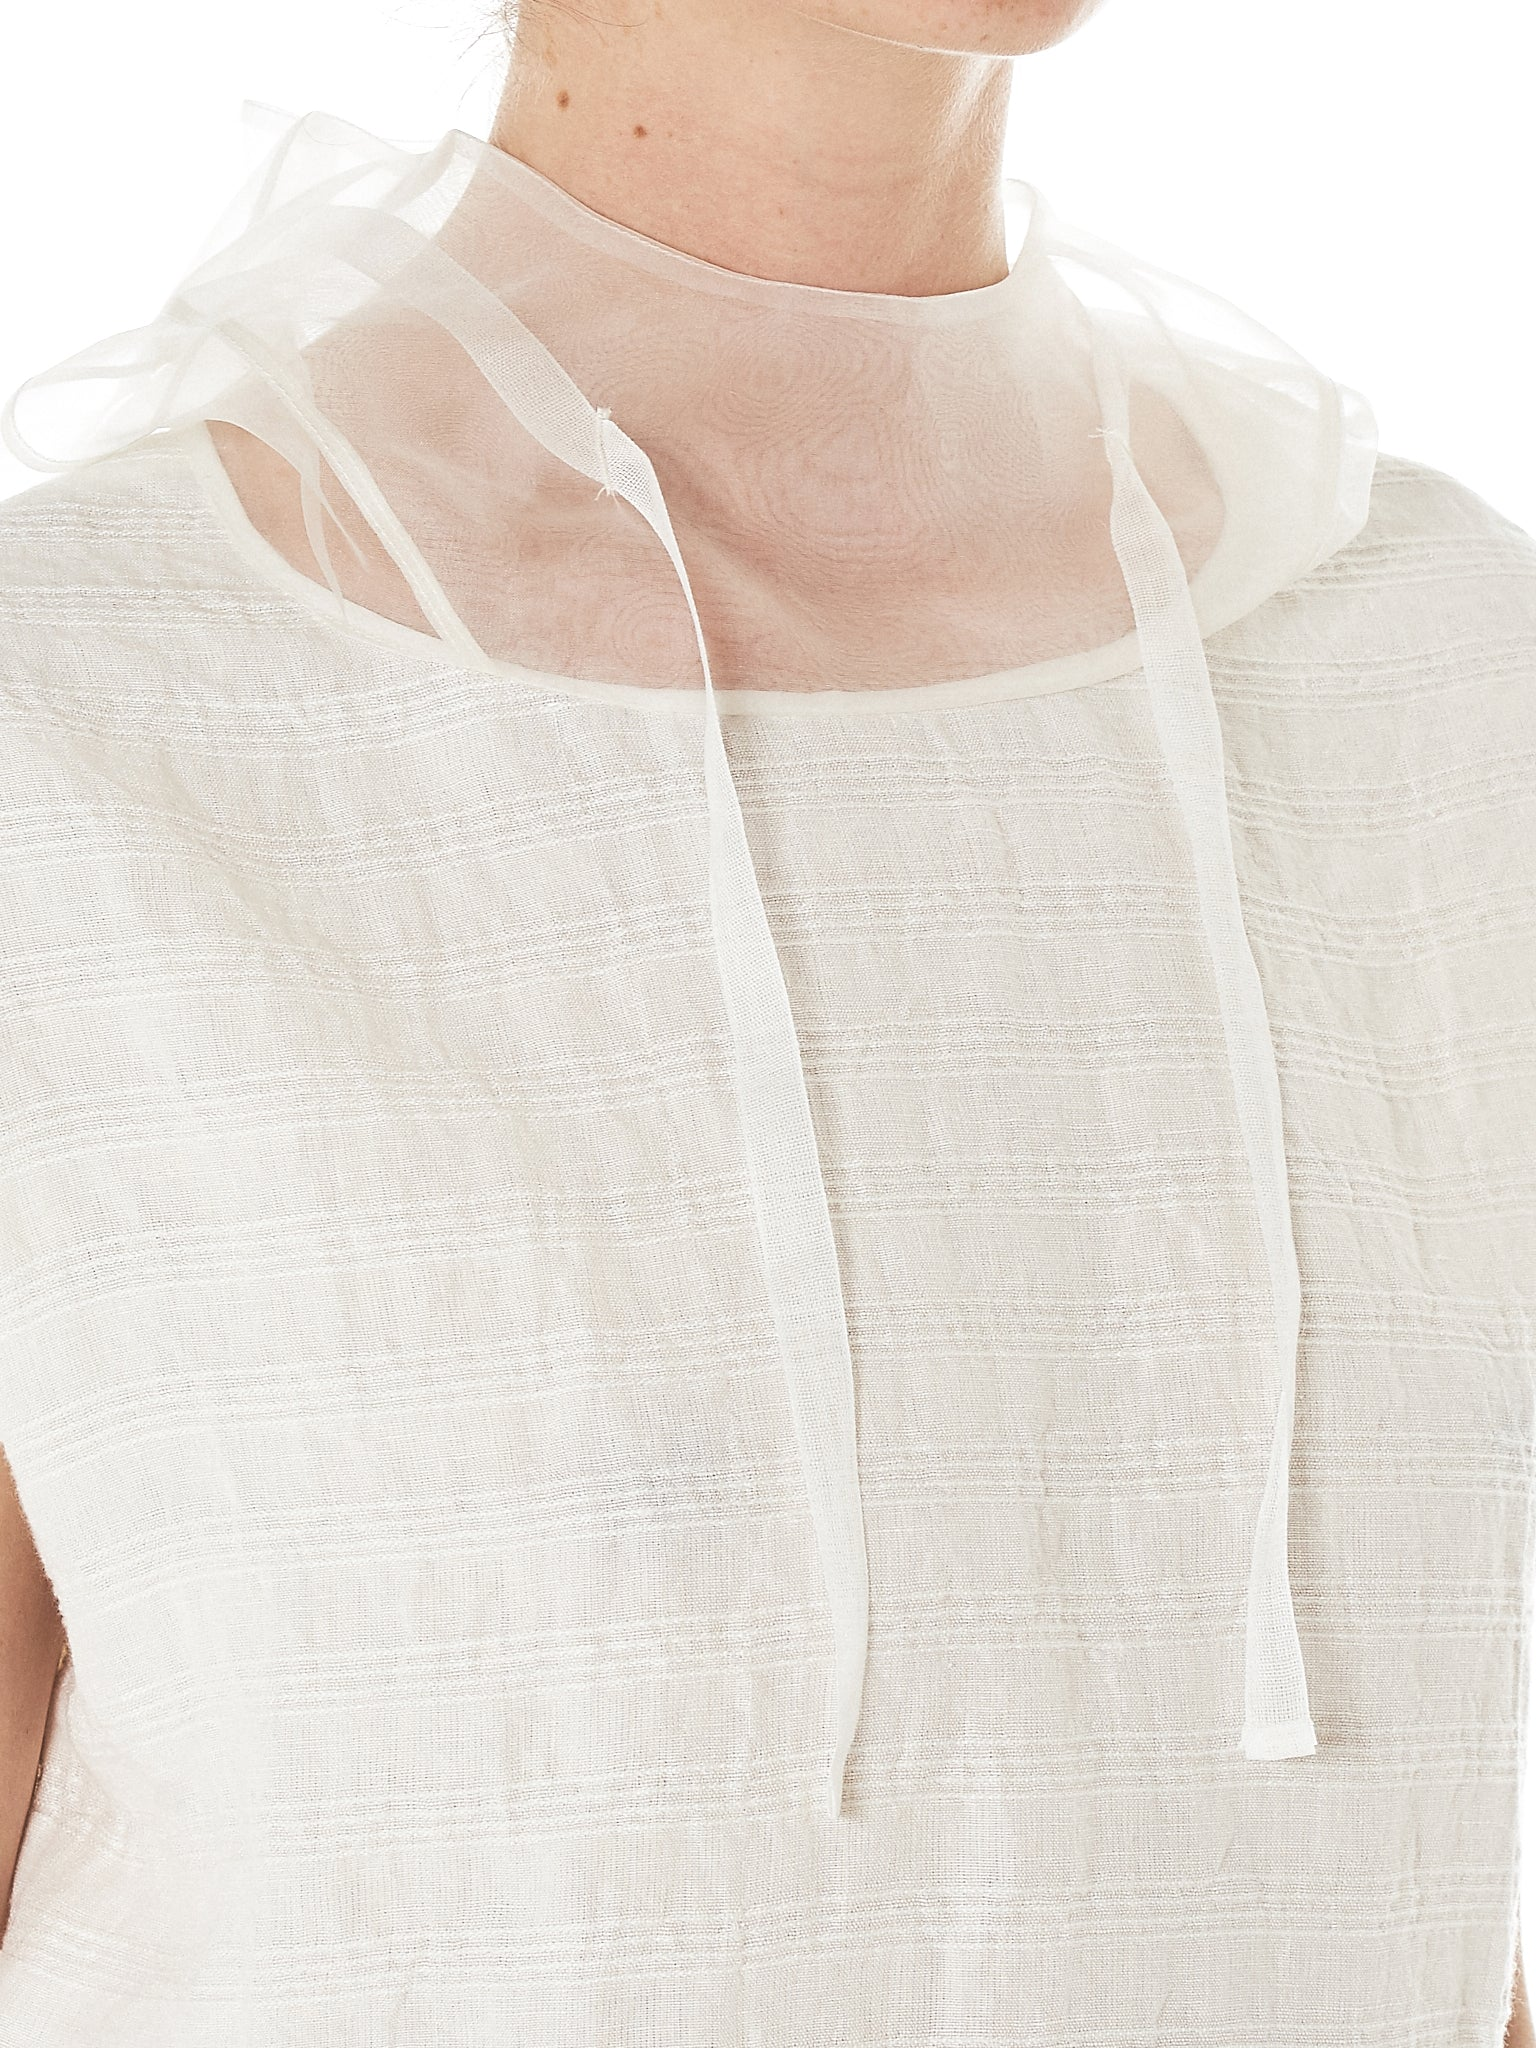 Shanshan Ruan Pleated Sweatshirt - Hlorenzo Detail 1